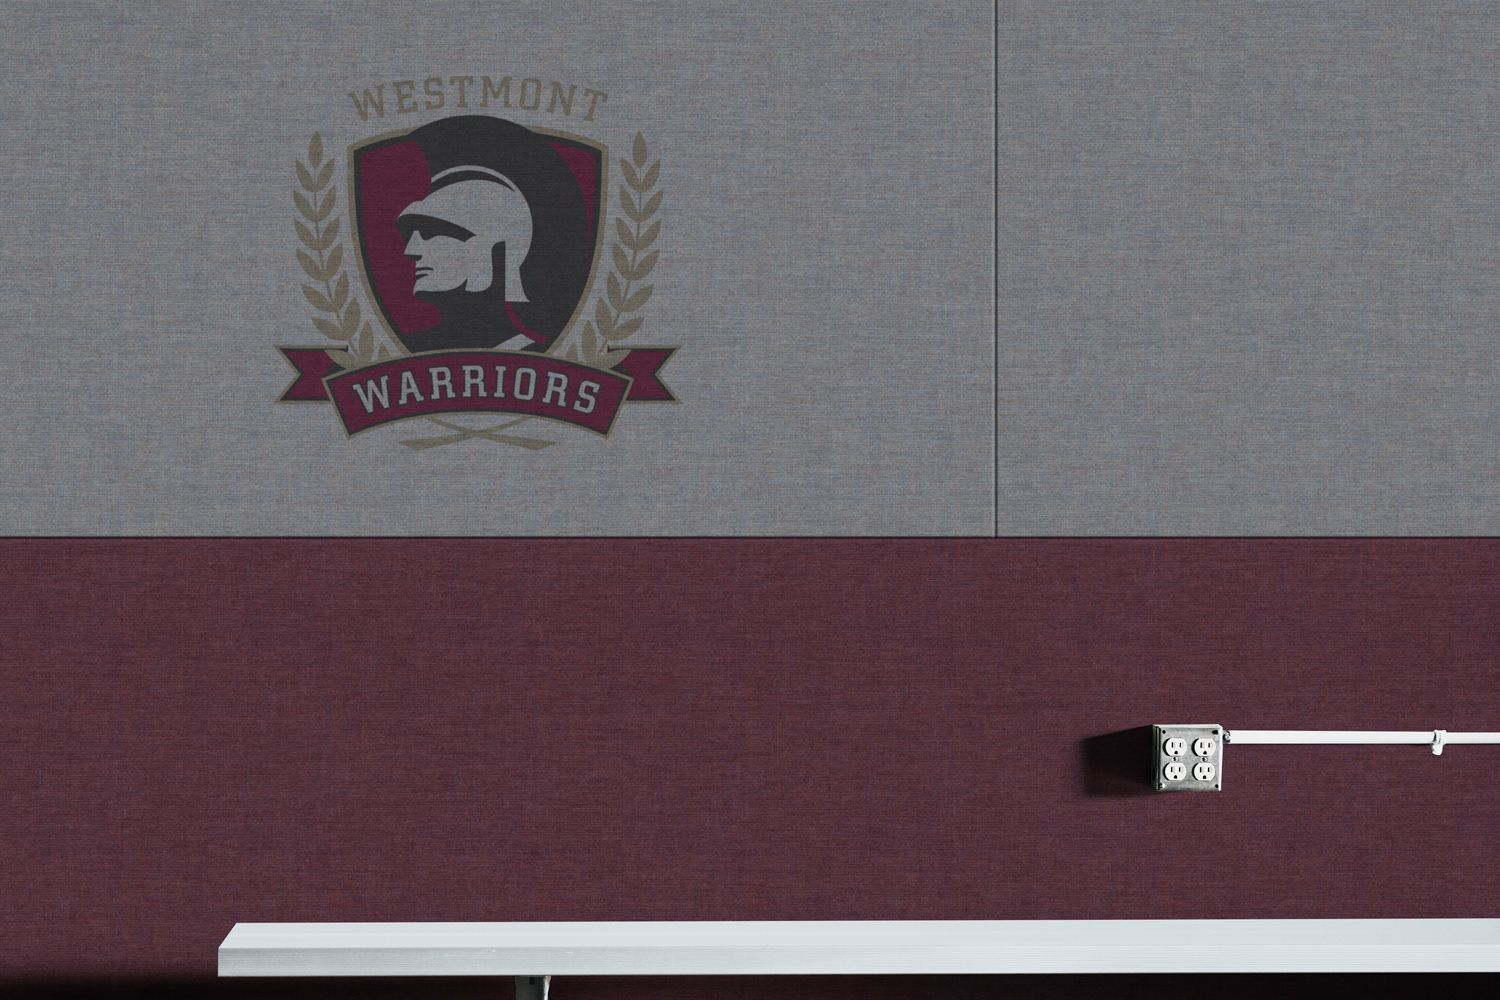 Westmont Warriors wall